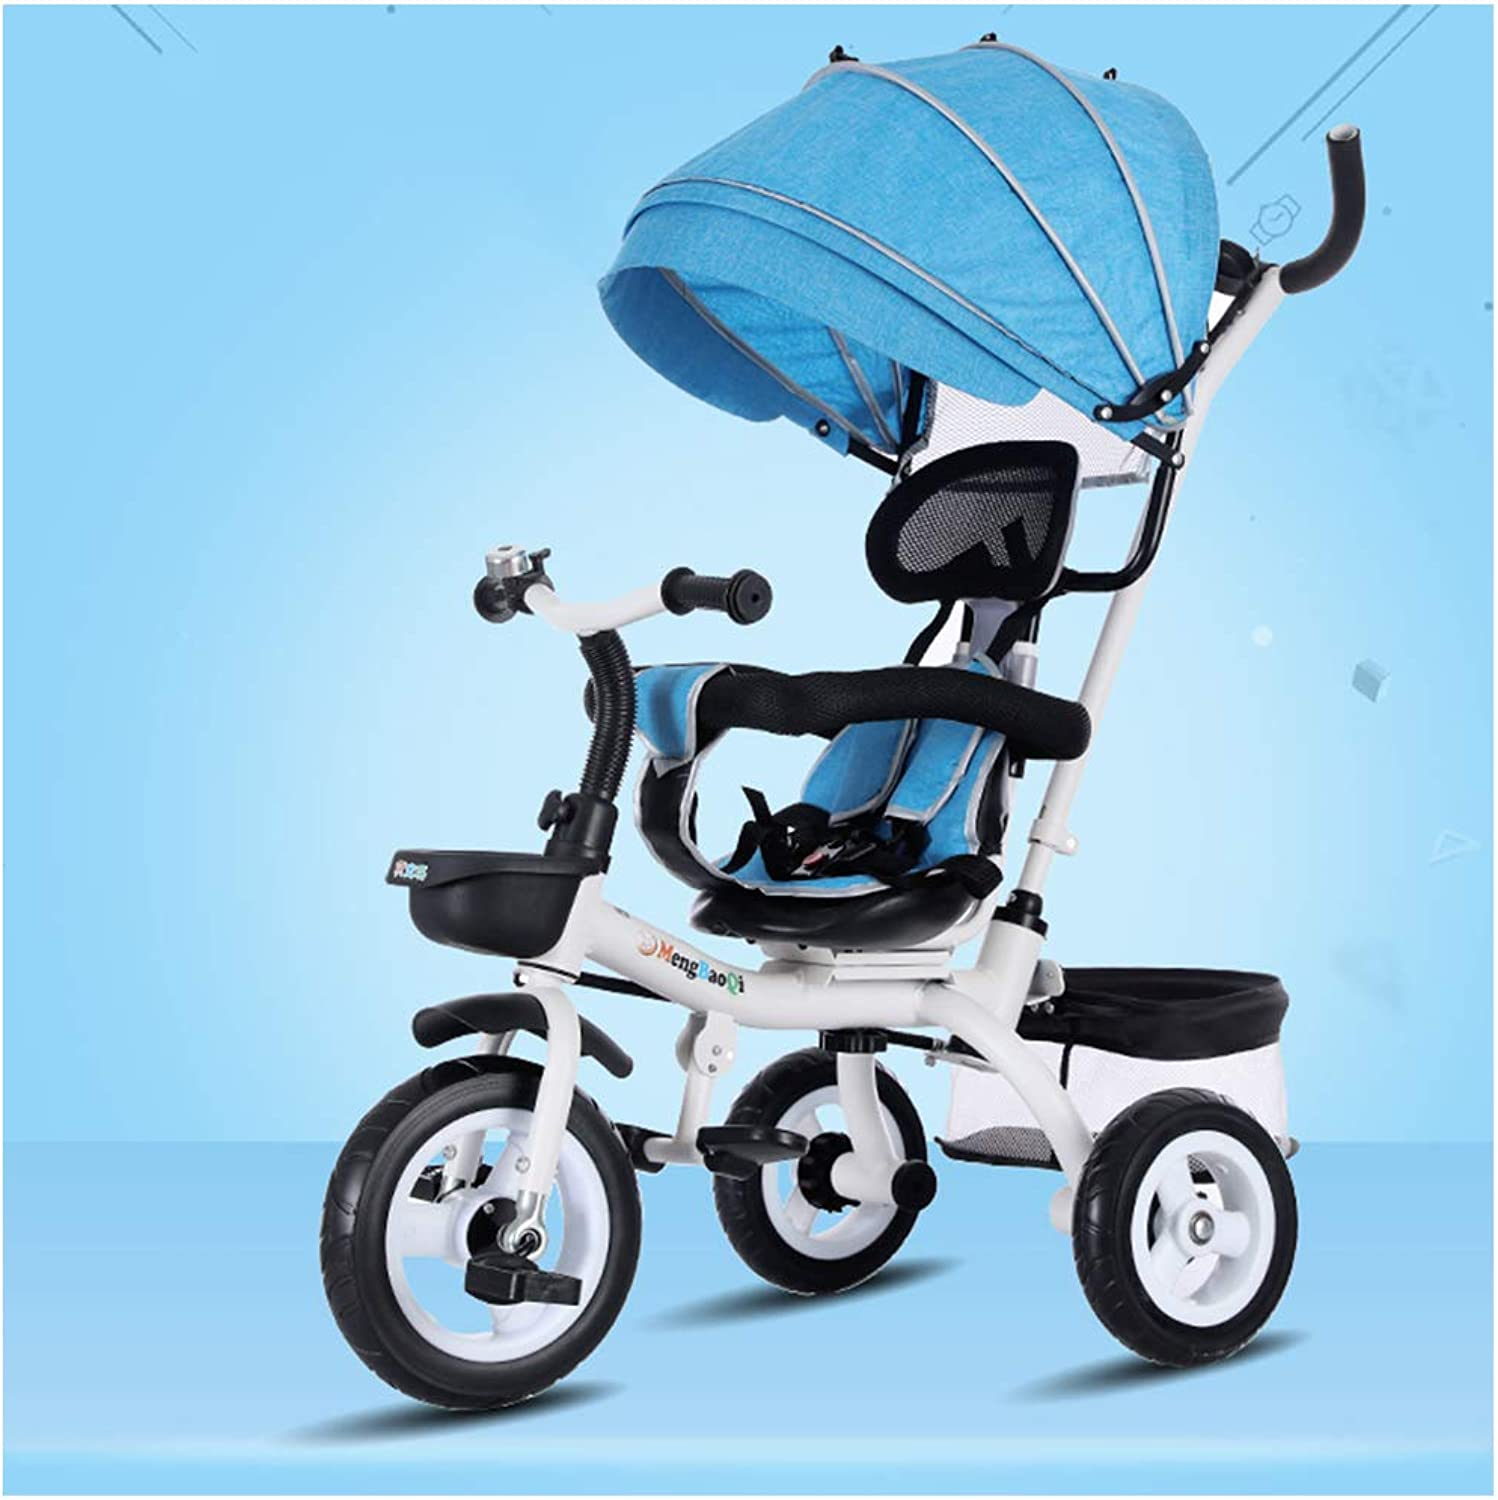 YINGH  4 in 1 Kids Tricycle, Five colors blueee2